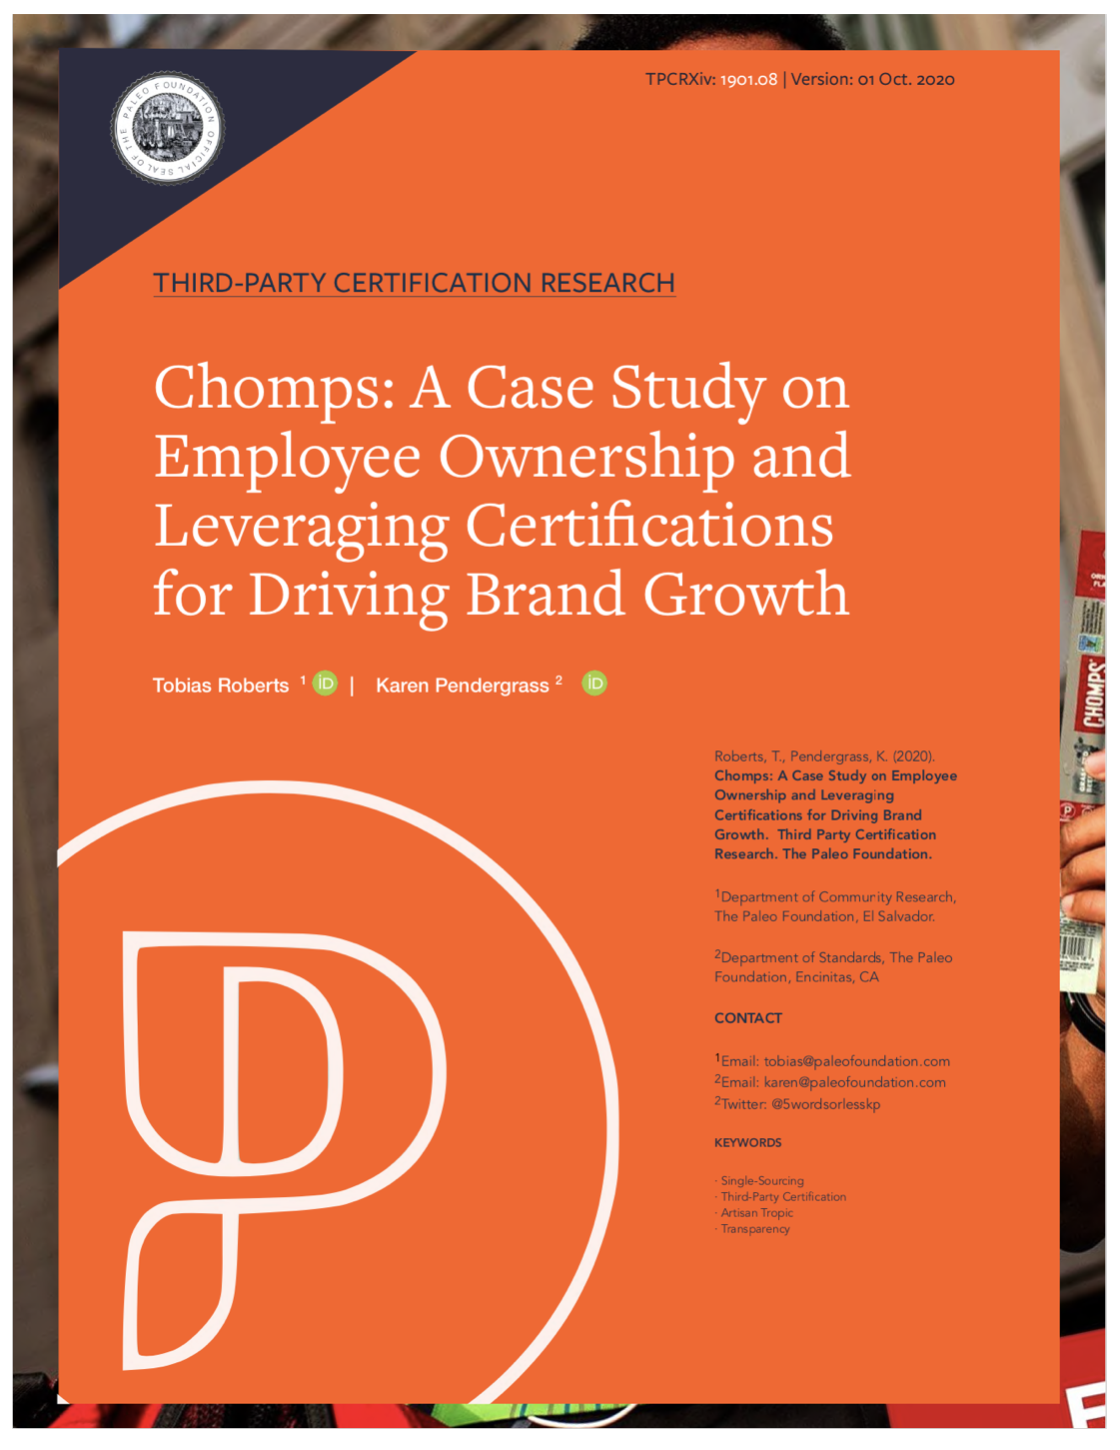 Chomps Case Study on Leveraging Certifications for Driving Brand Growth